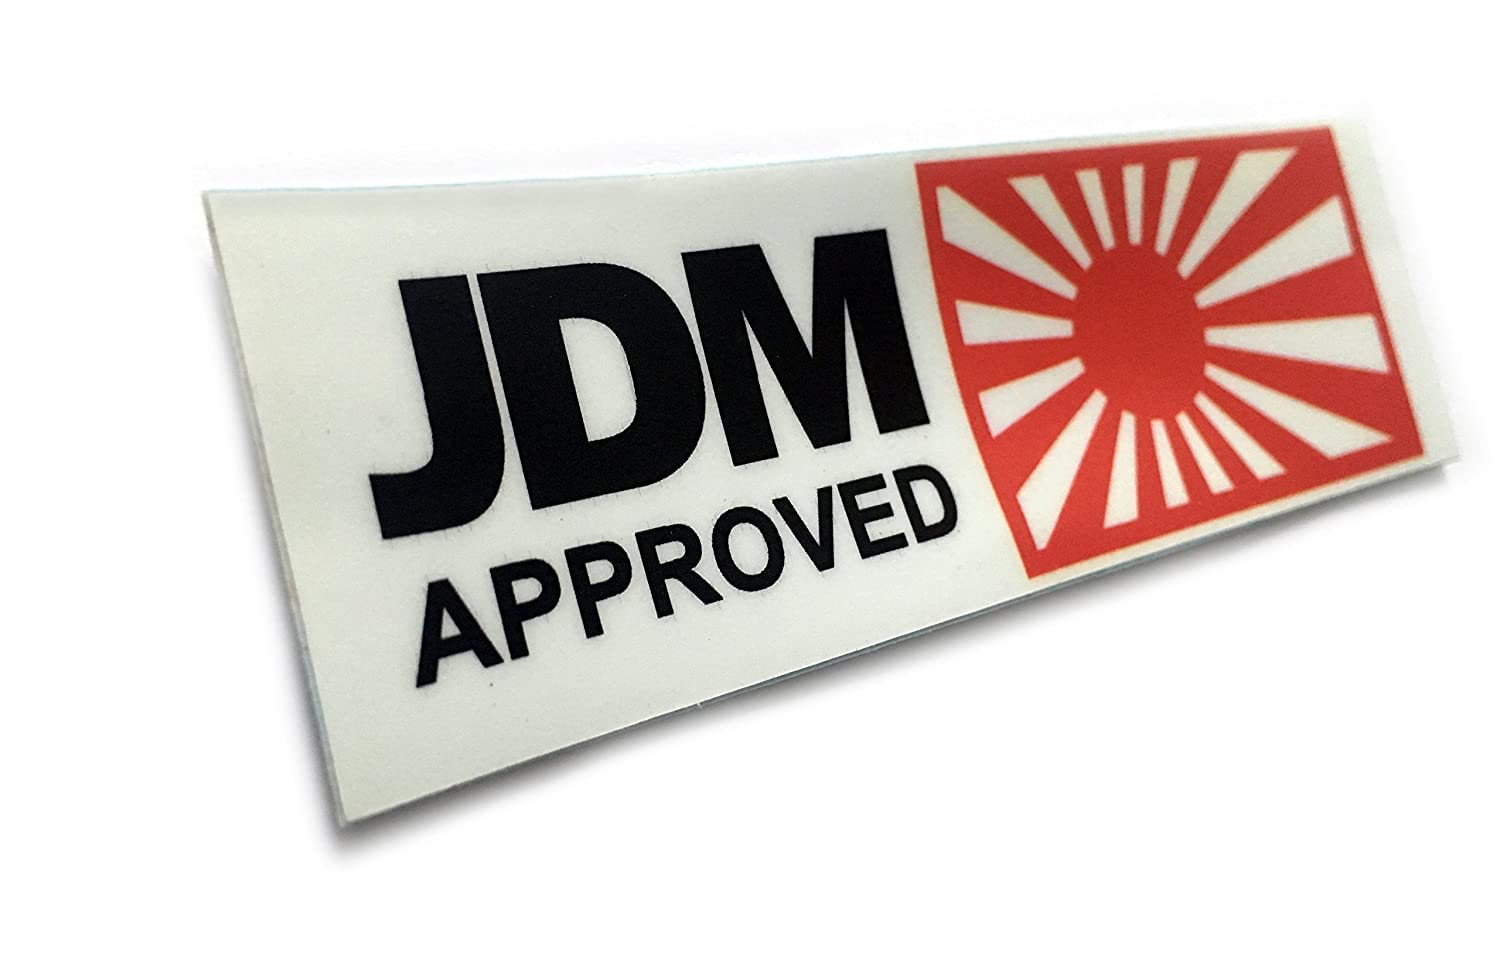 Japanese domestic market jdm approved automotive car decal orafol vinyl sticker for honda mazda subaru nissan toyota mitsubishi suzuki